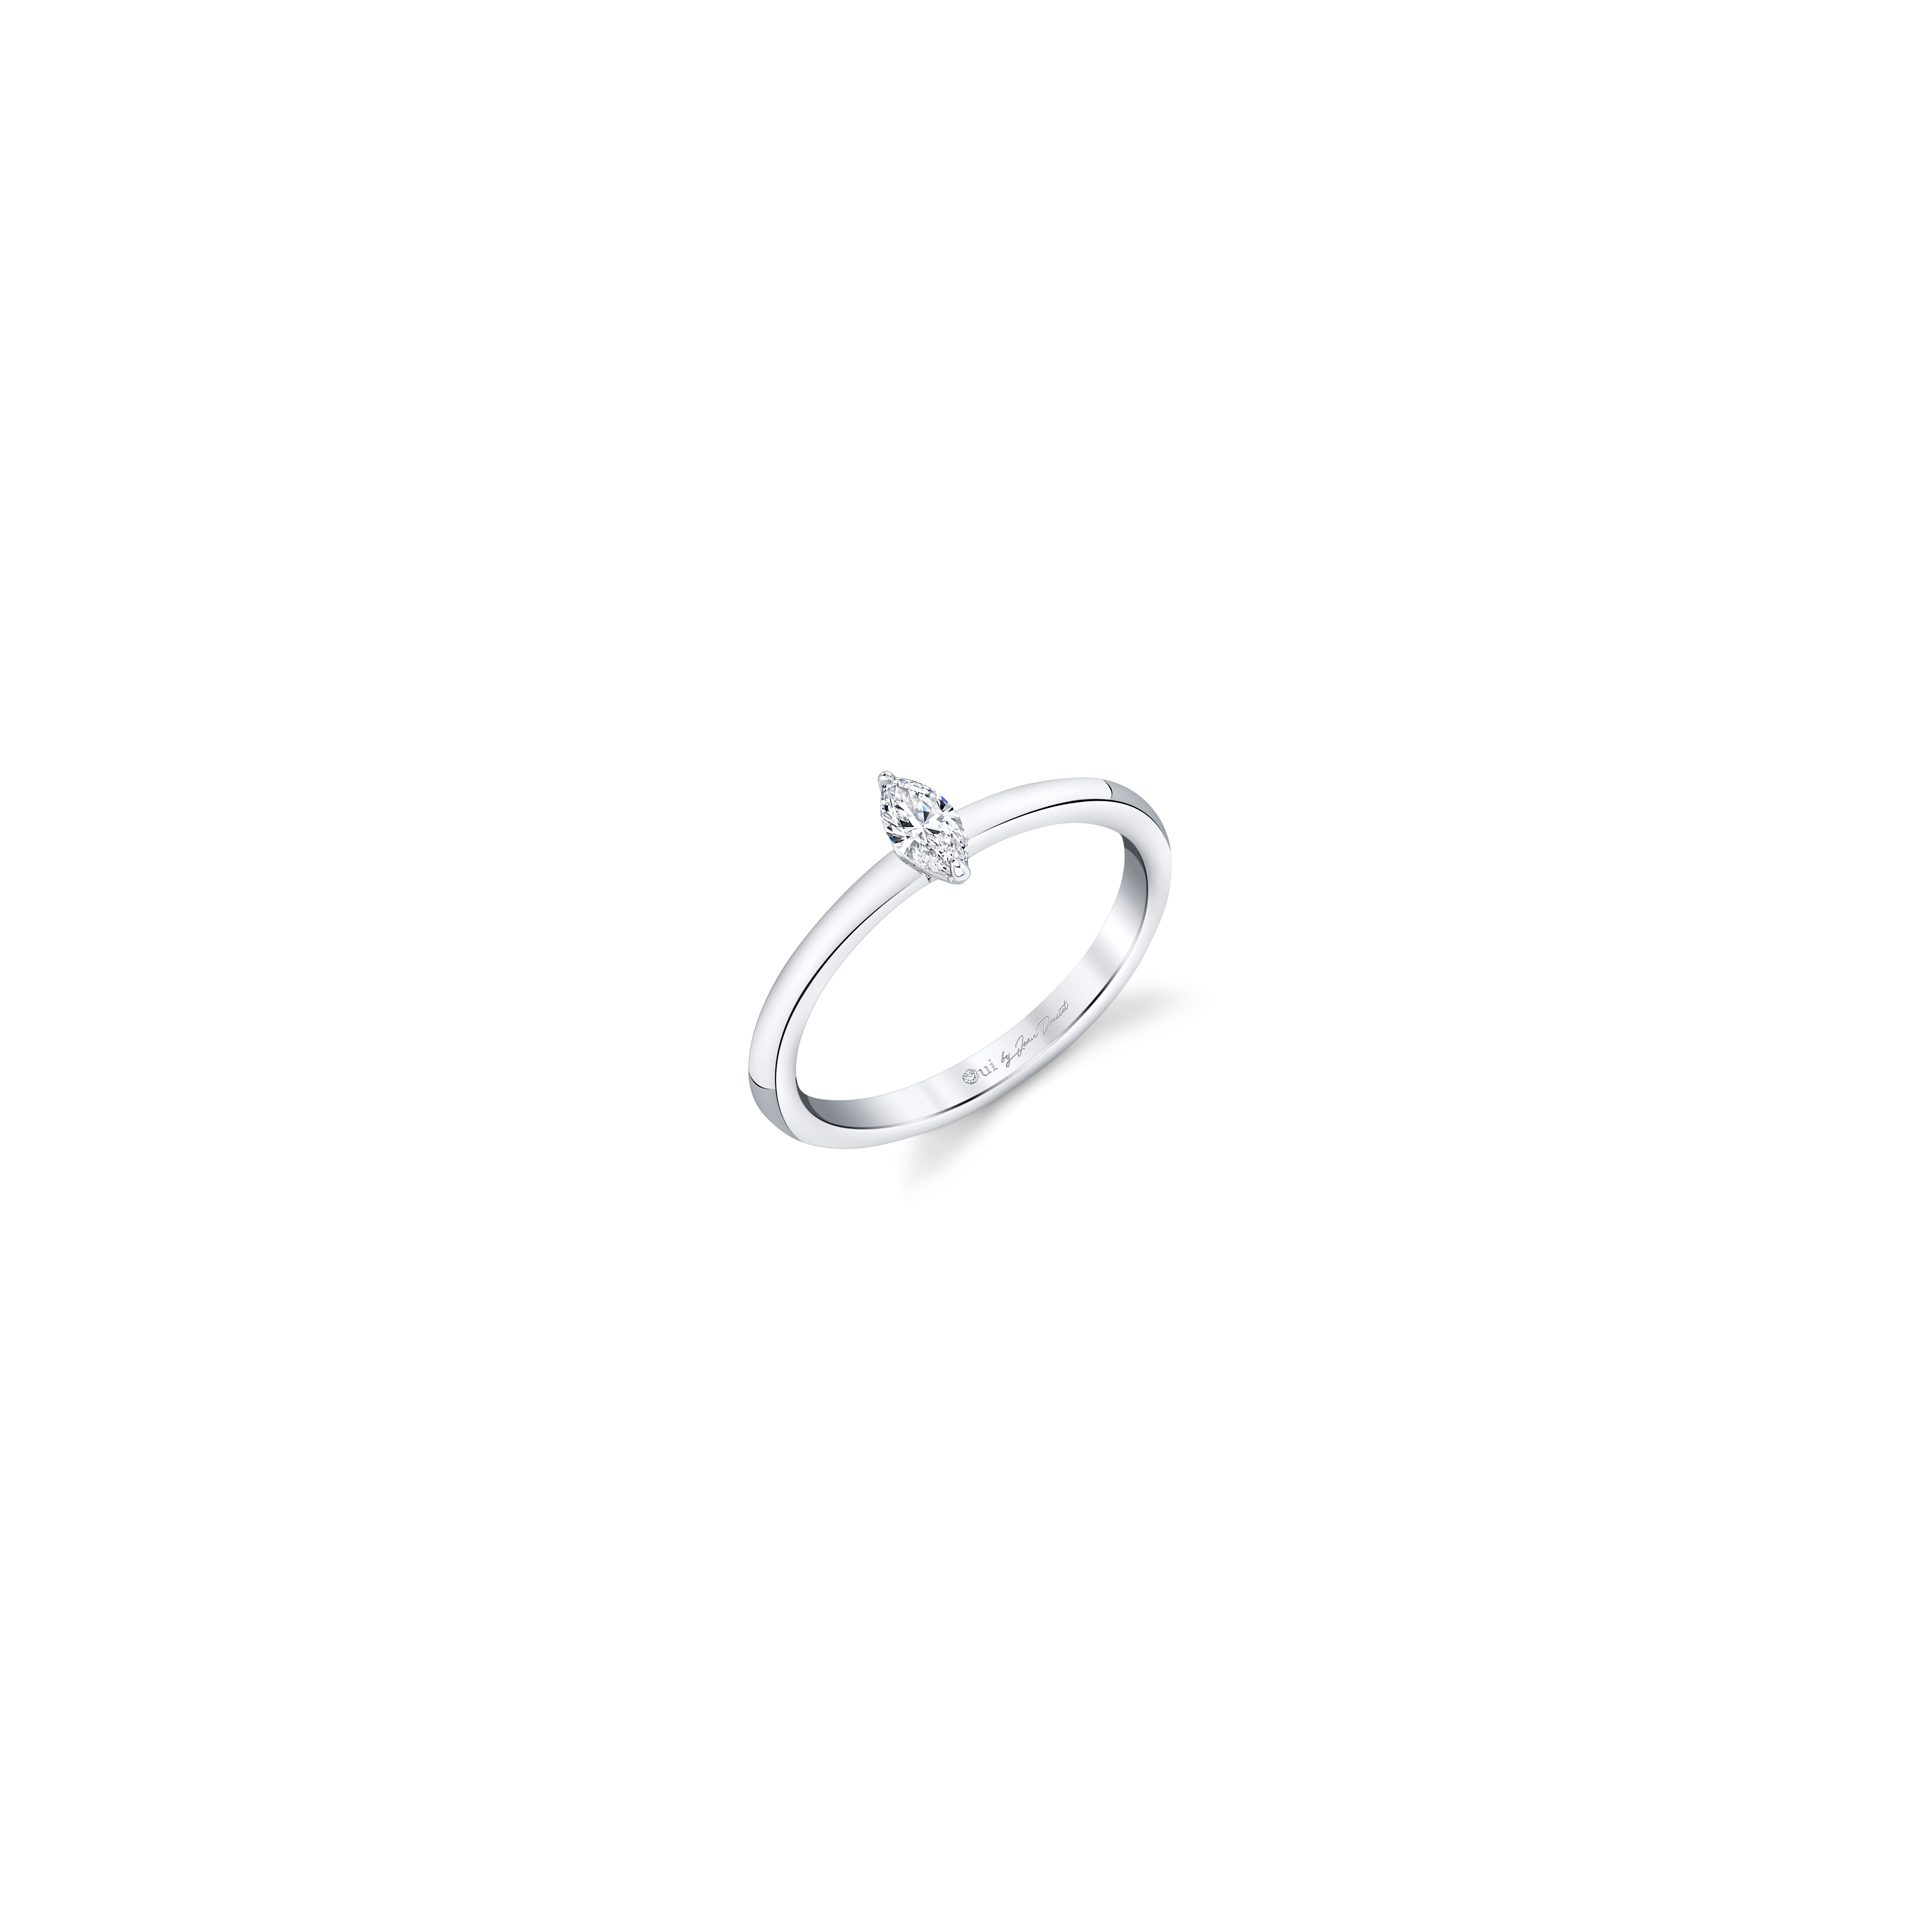 La Petite Marquise Diamond Wedding Band in 18k White Gold Standing View by Oui by Jean Dousset